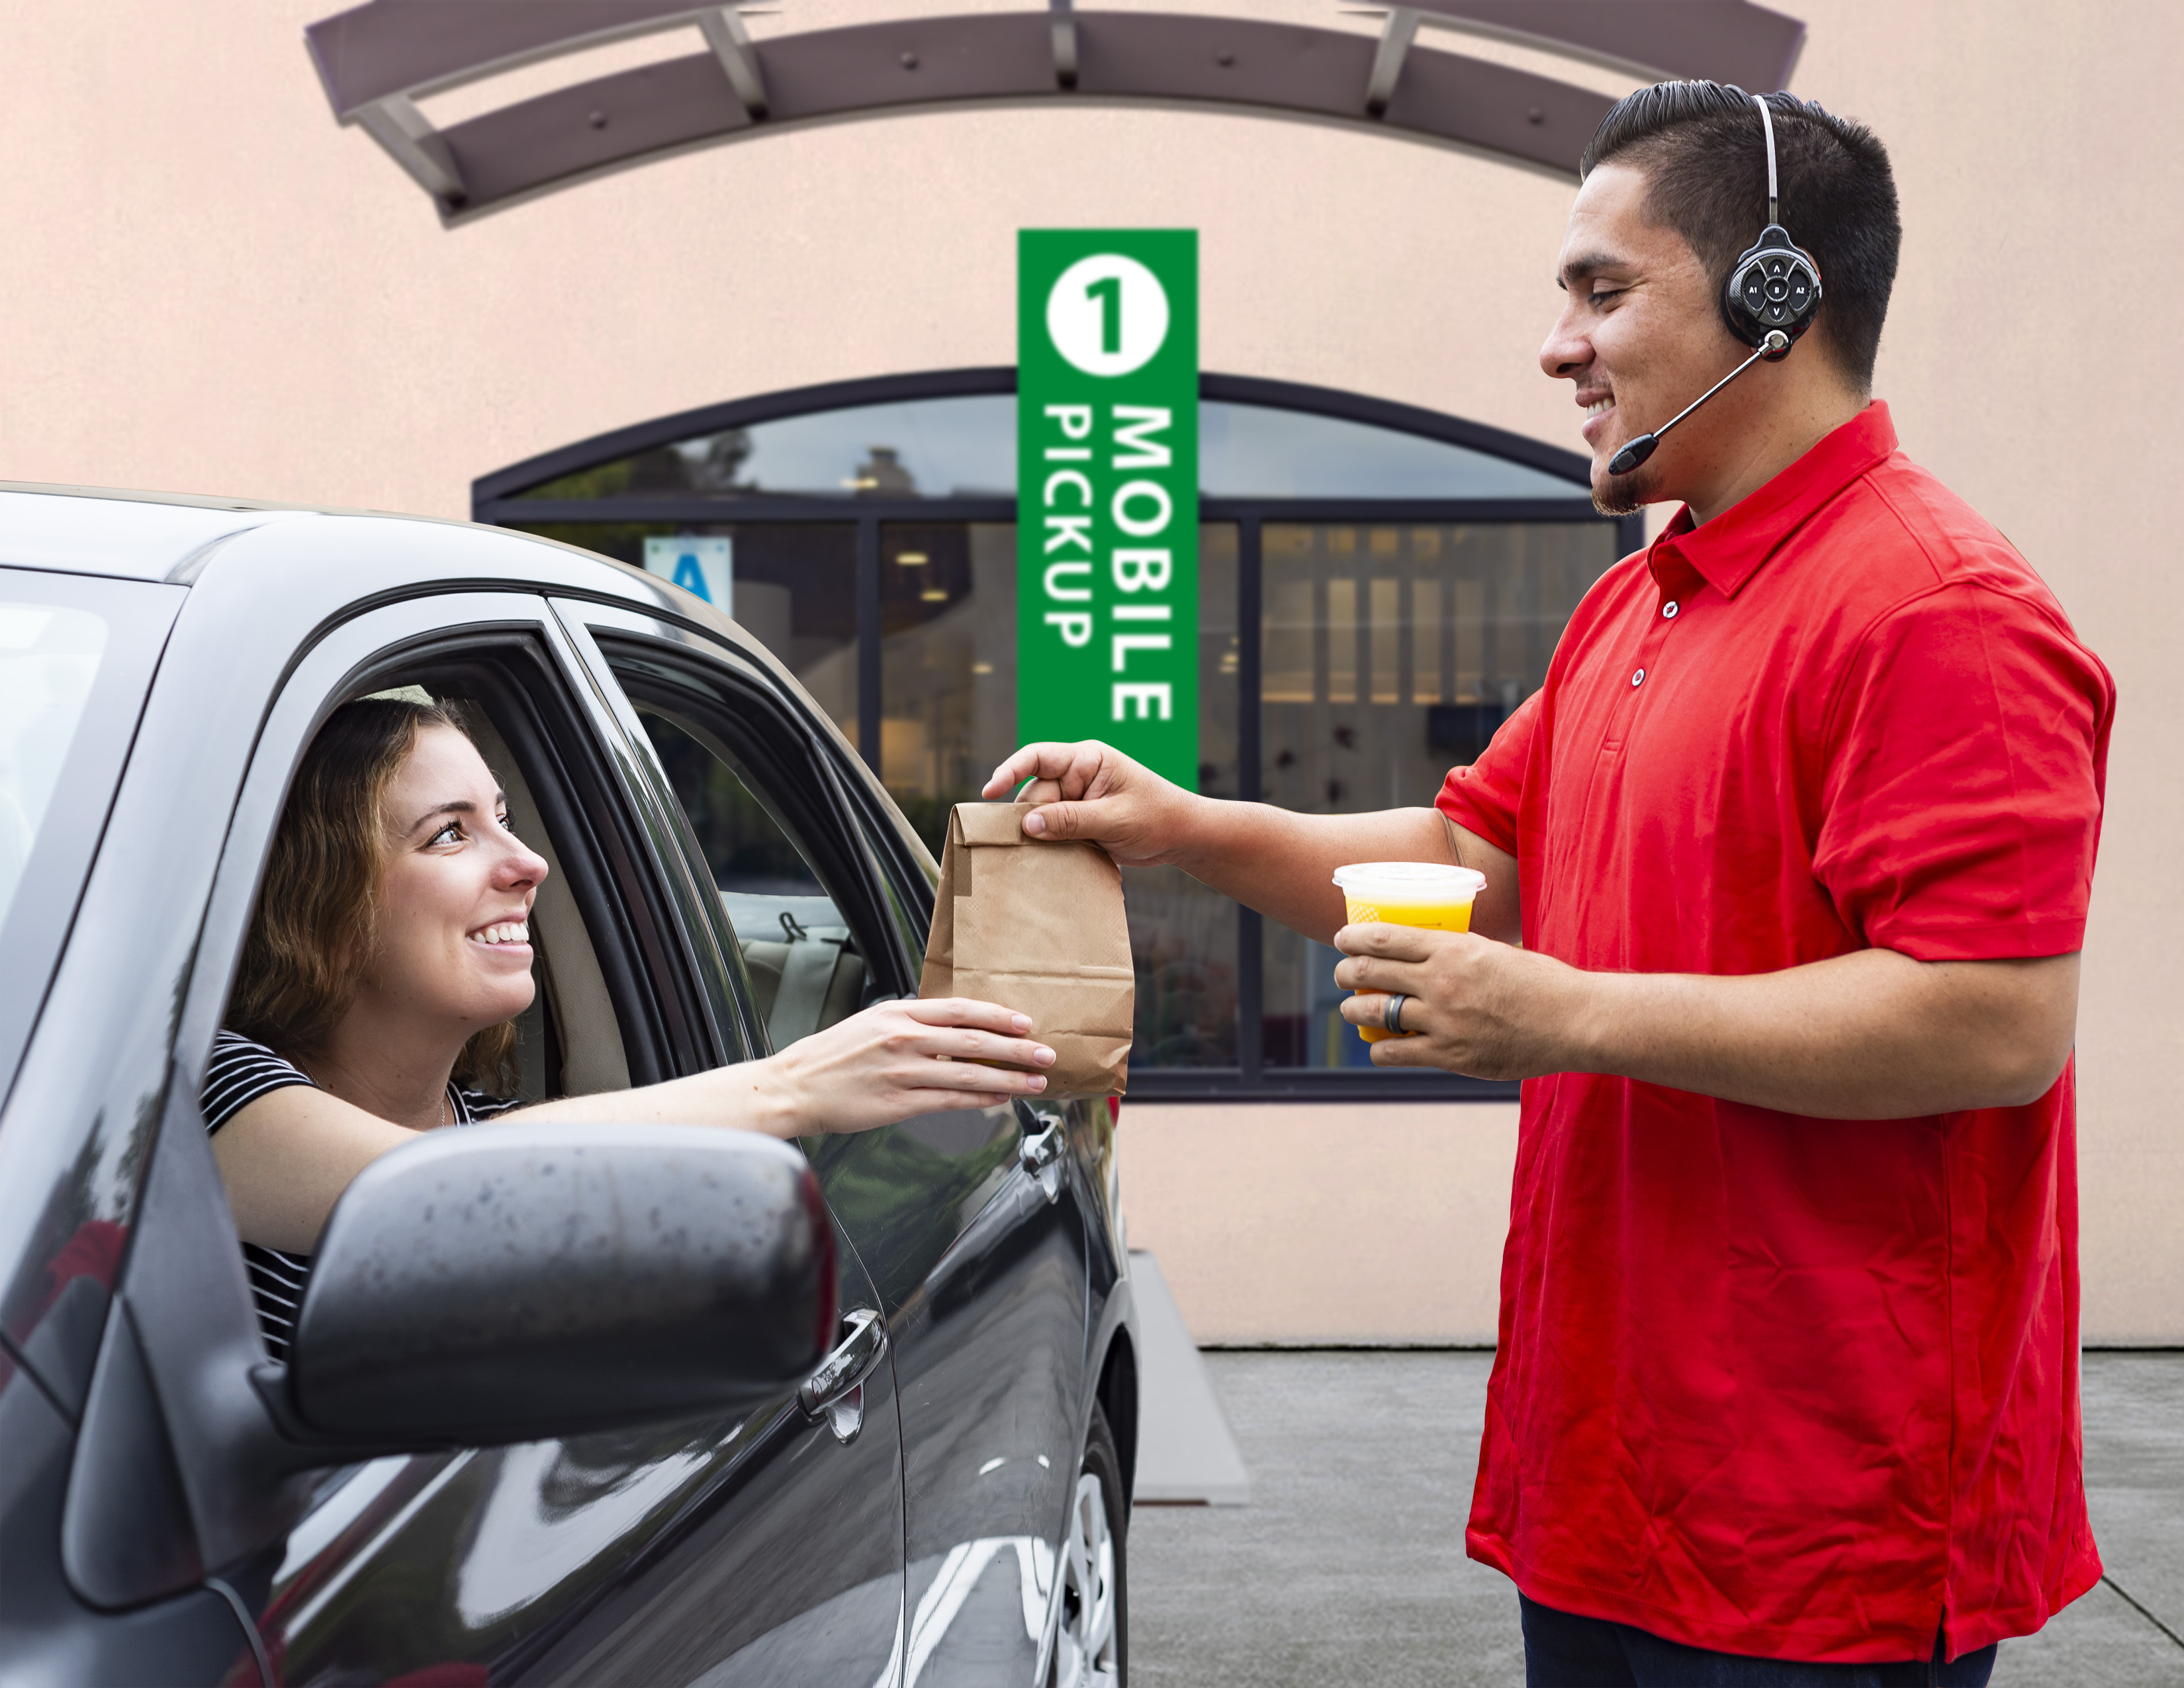 Add Curbside Pick Up To Your Restaurant Operationrestaurant